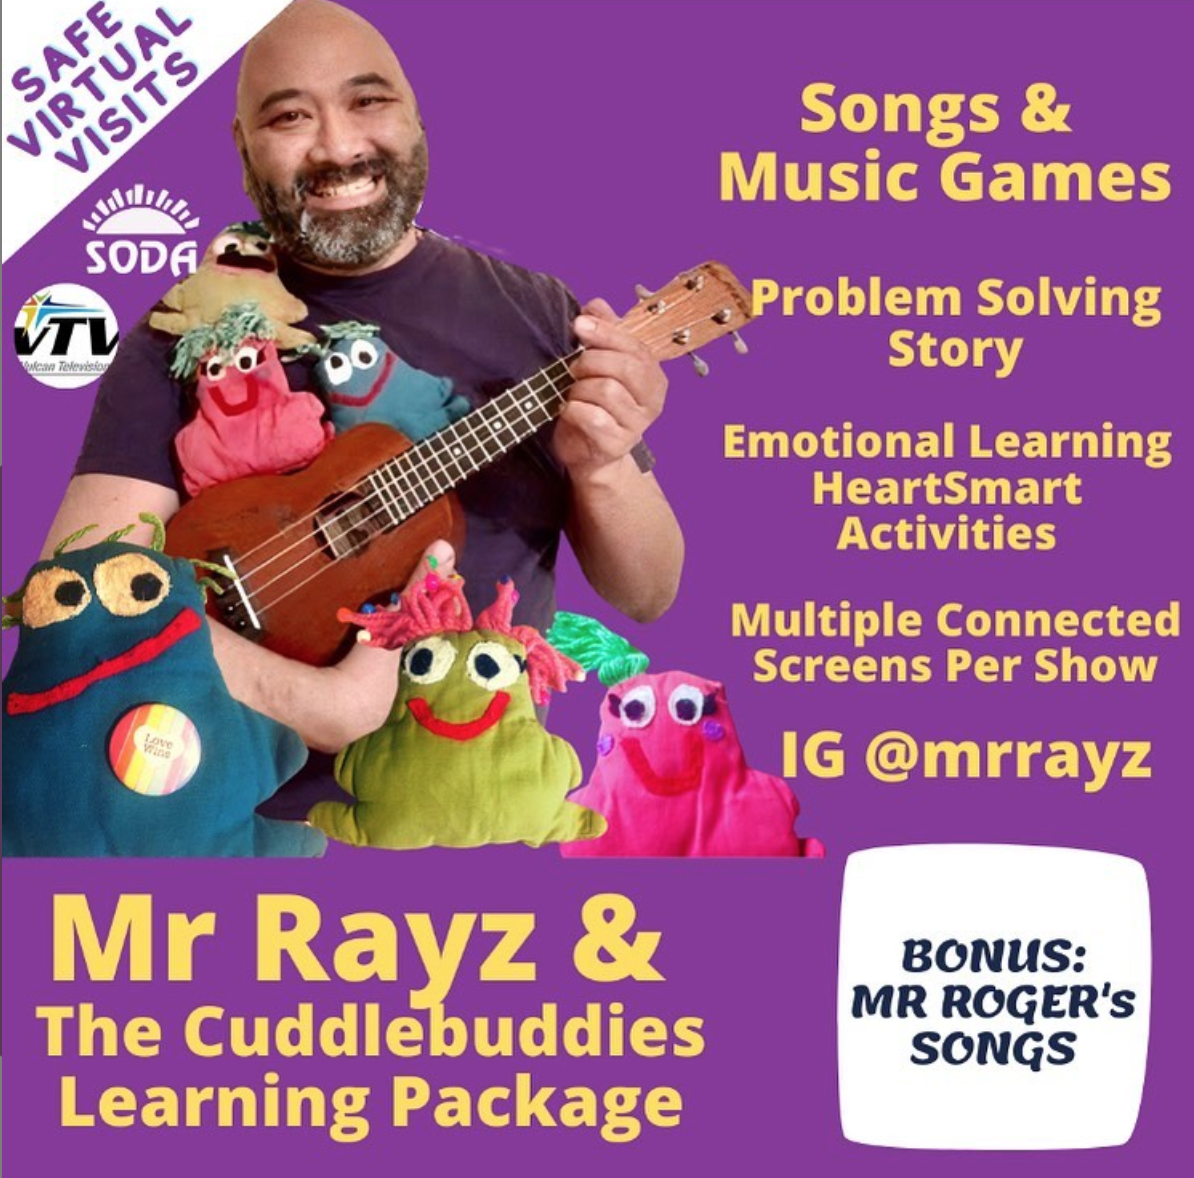 Mr Rayz Learning Package